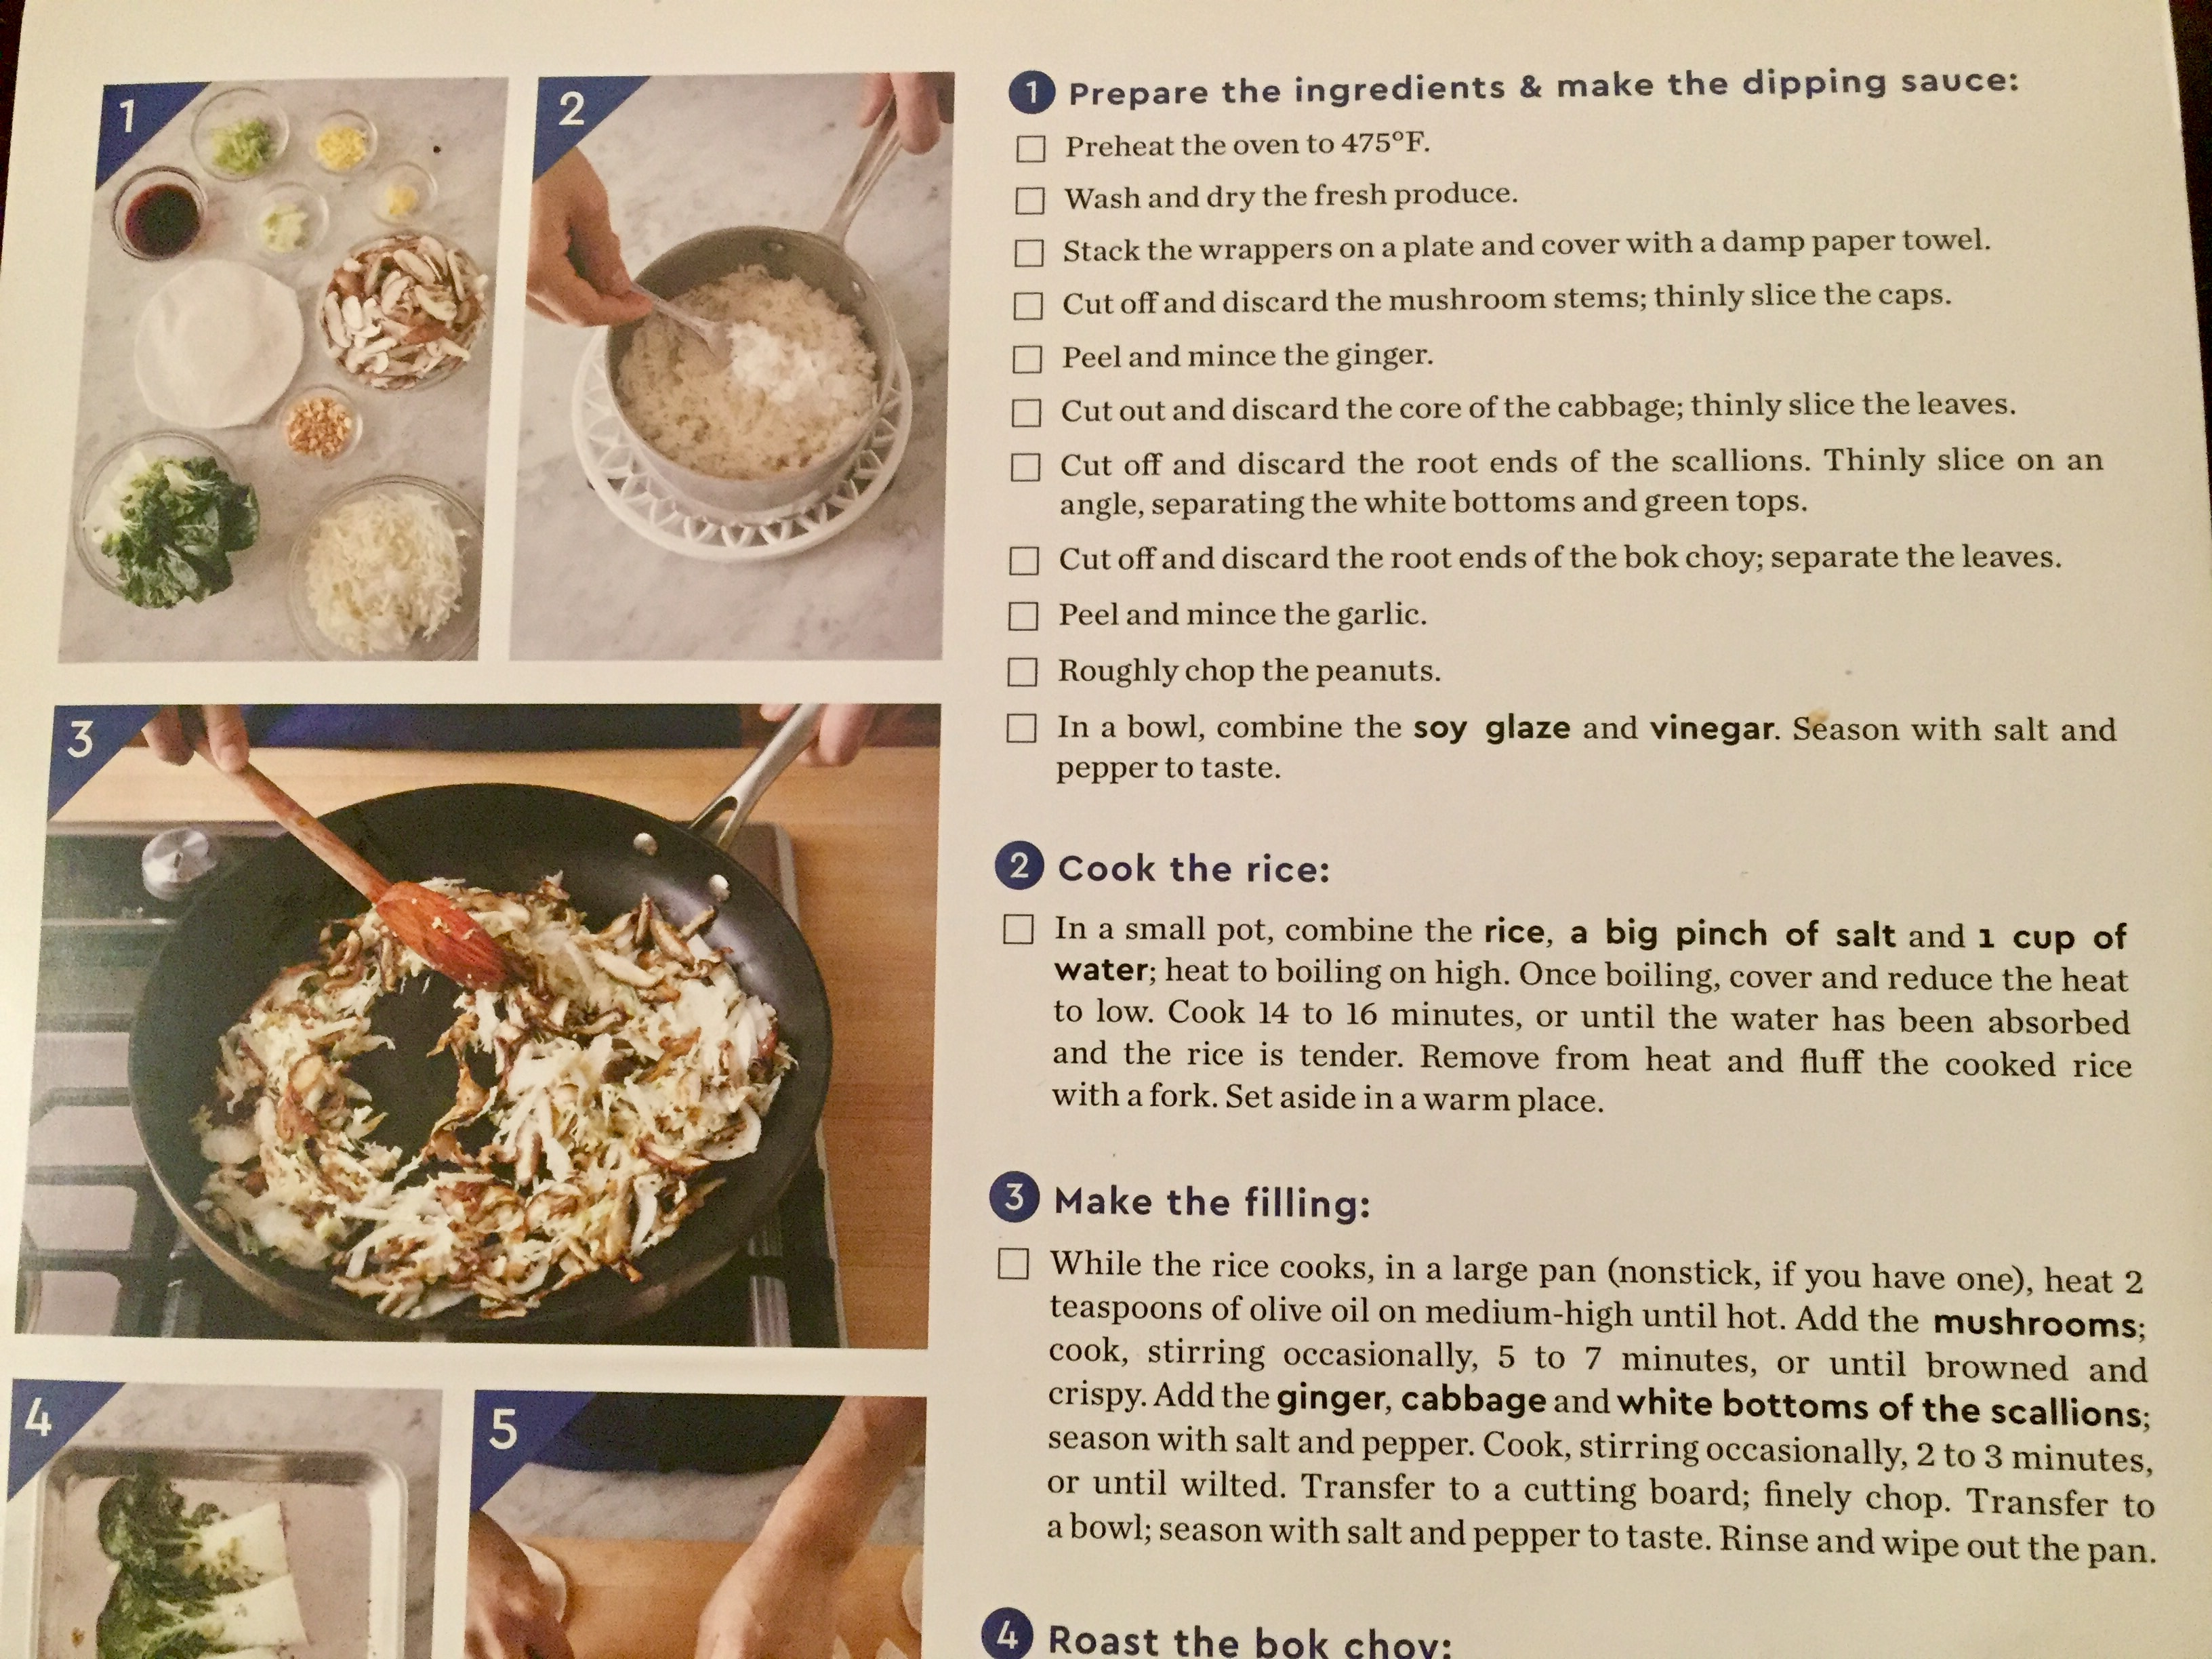 Blue apron worth it - The Three Recipes Which Included My Substituted Ingredients All Turned Out Fine And In The Process I Nearly Halved The Time It Took To Make A Blue Apron